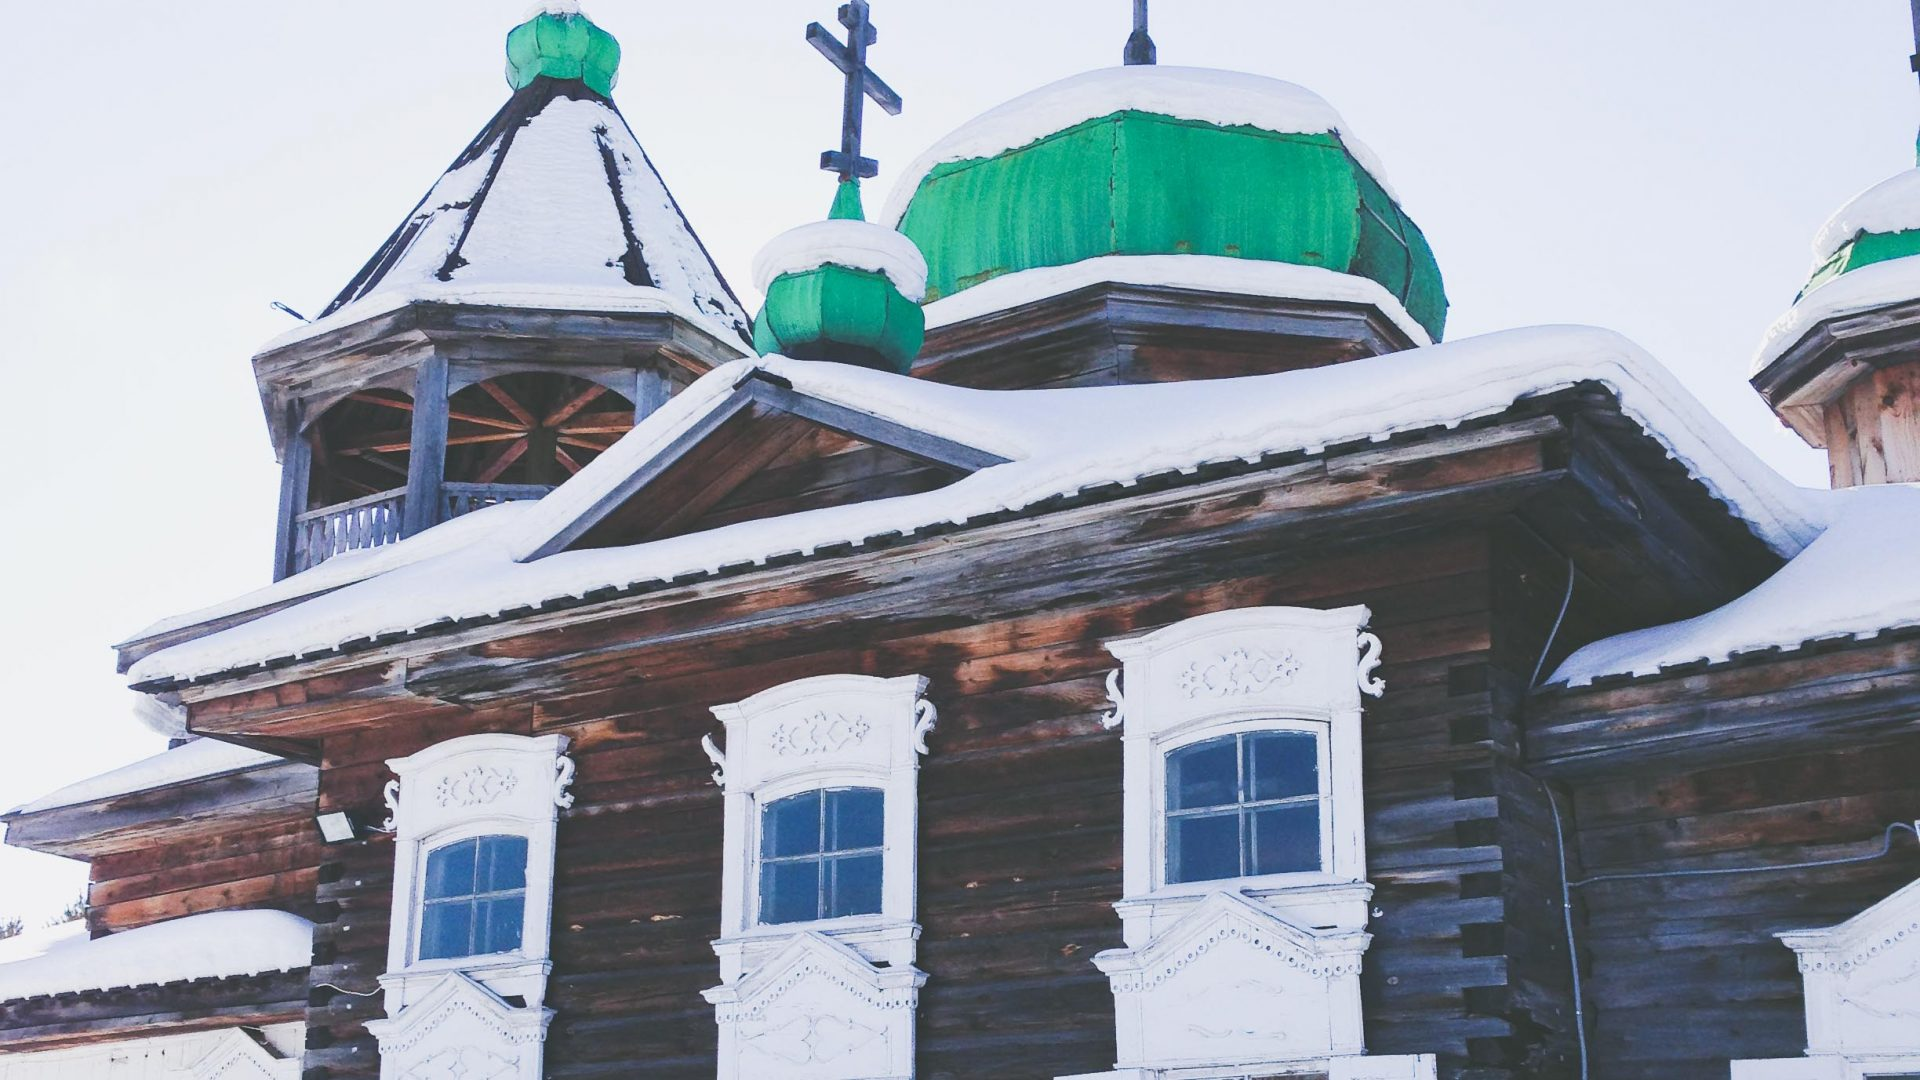 A church covered in snow along the route of the Trans-Siberian railway journey.